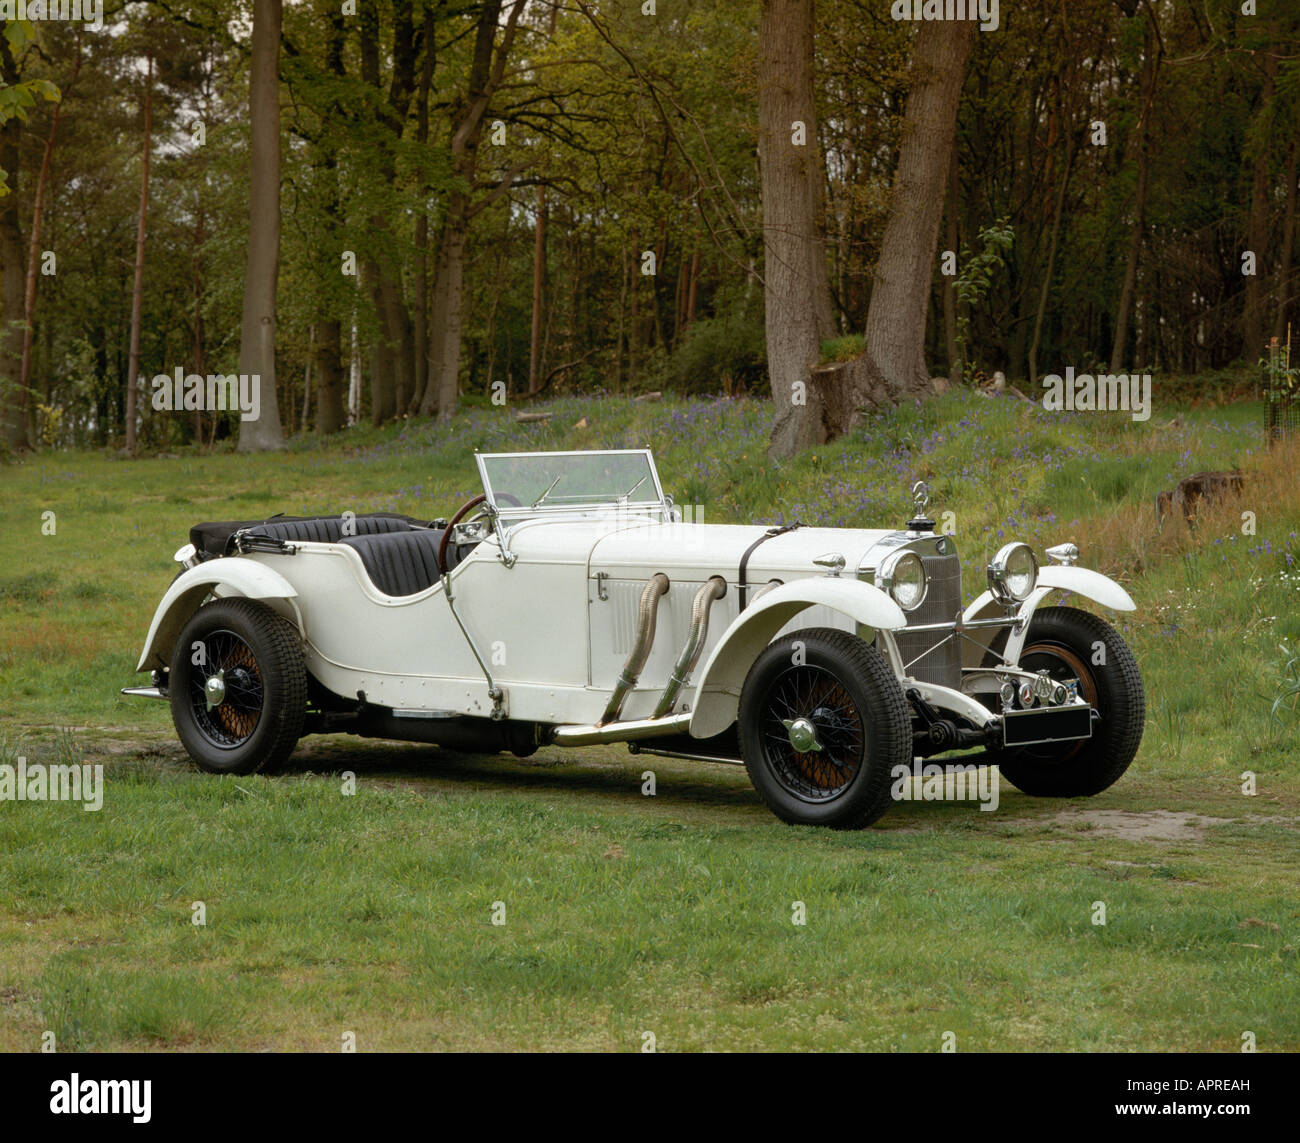 1928 mercedes benz 36 220 type s stock photo royalty free for 1928 mercedes benz